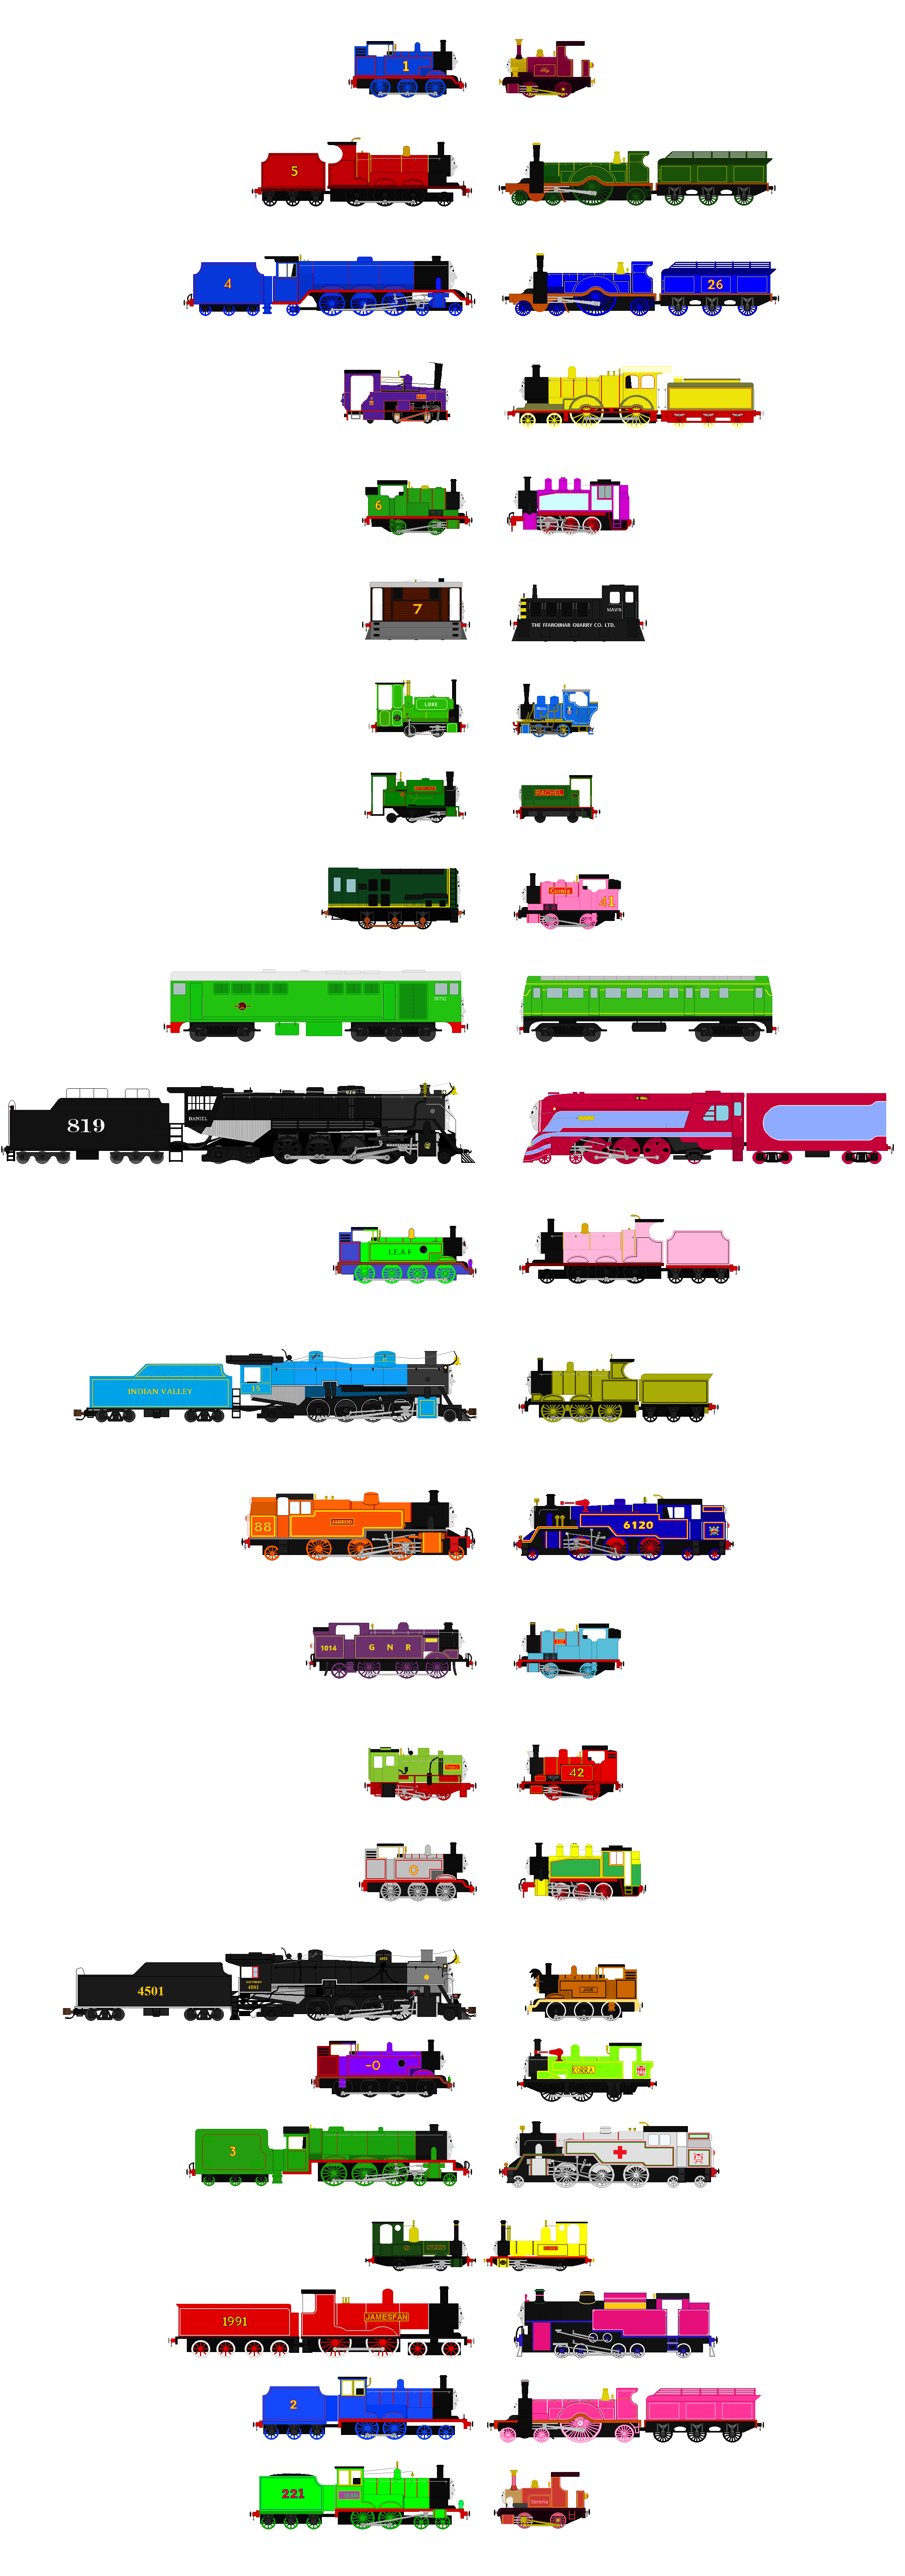 Image boco in trainz thomas and friends png scratchpad fandom - Favorite Thomas And Friends Loved Ones By Agent555 On